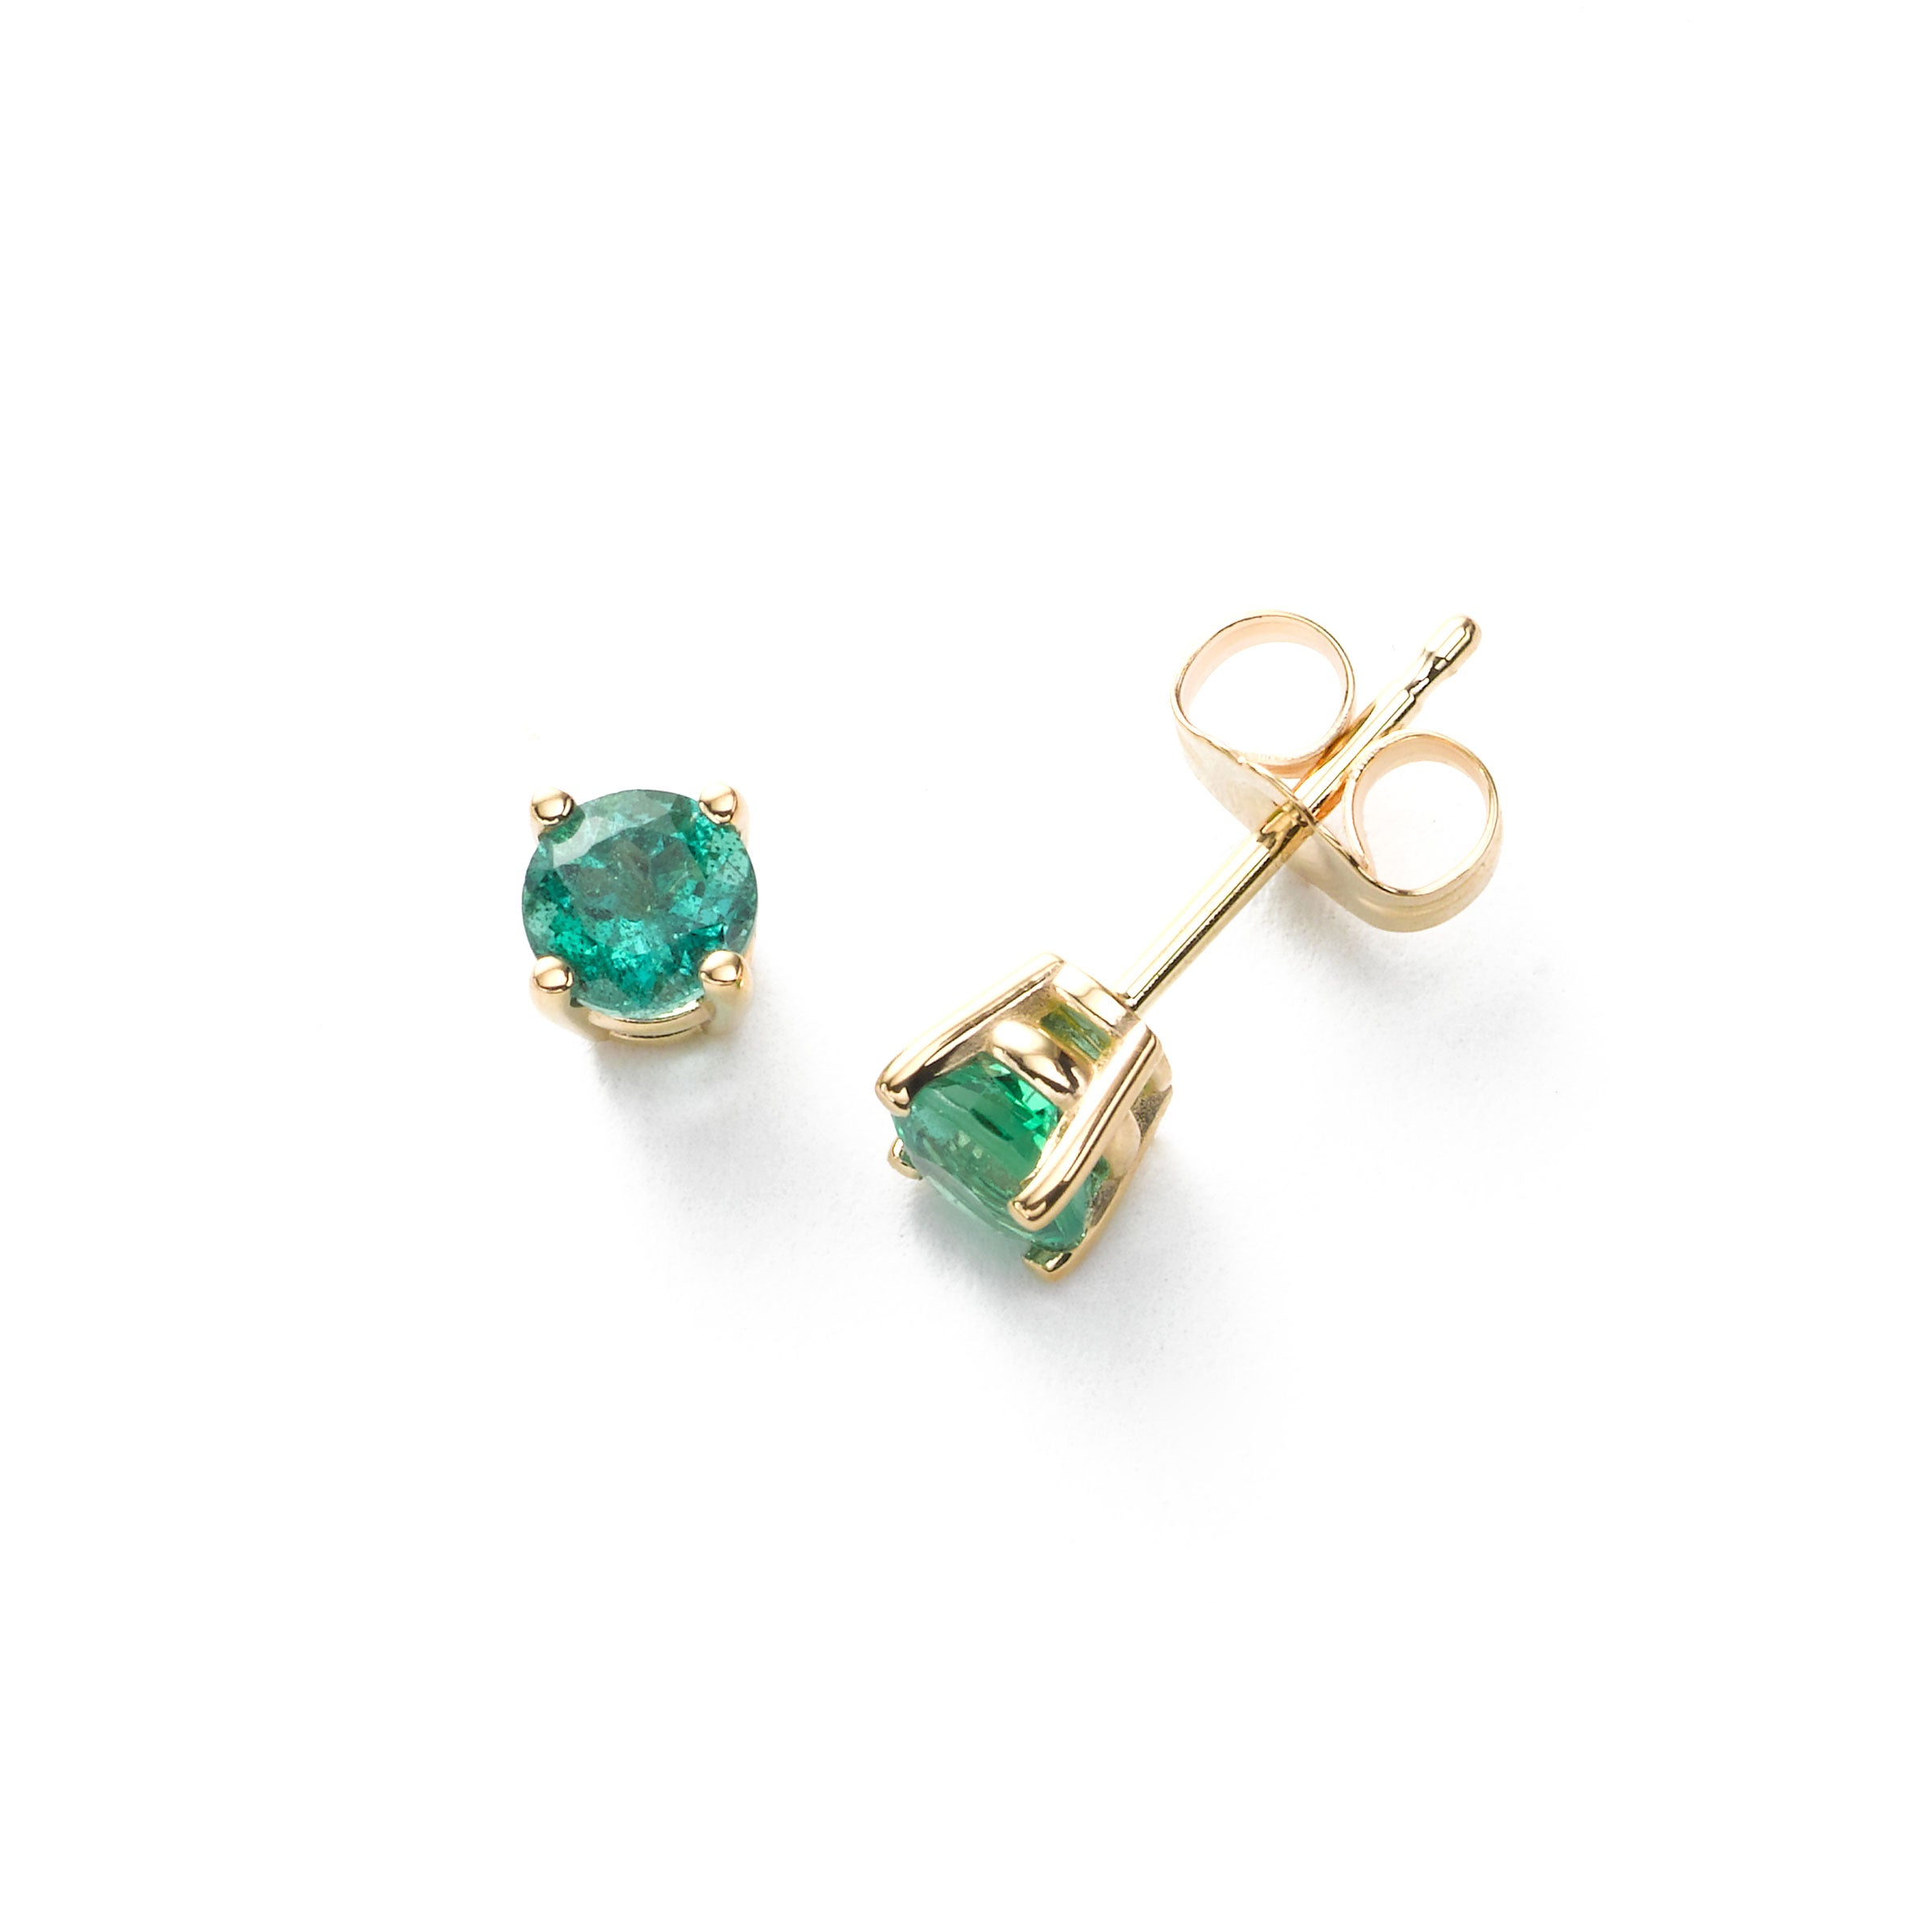 Emerald Stud Earring, 14K Yellow Gold